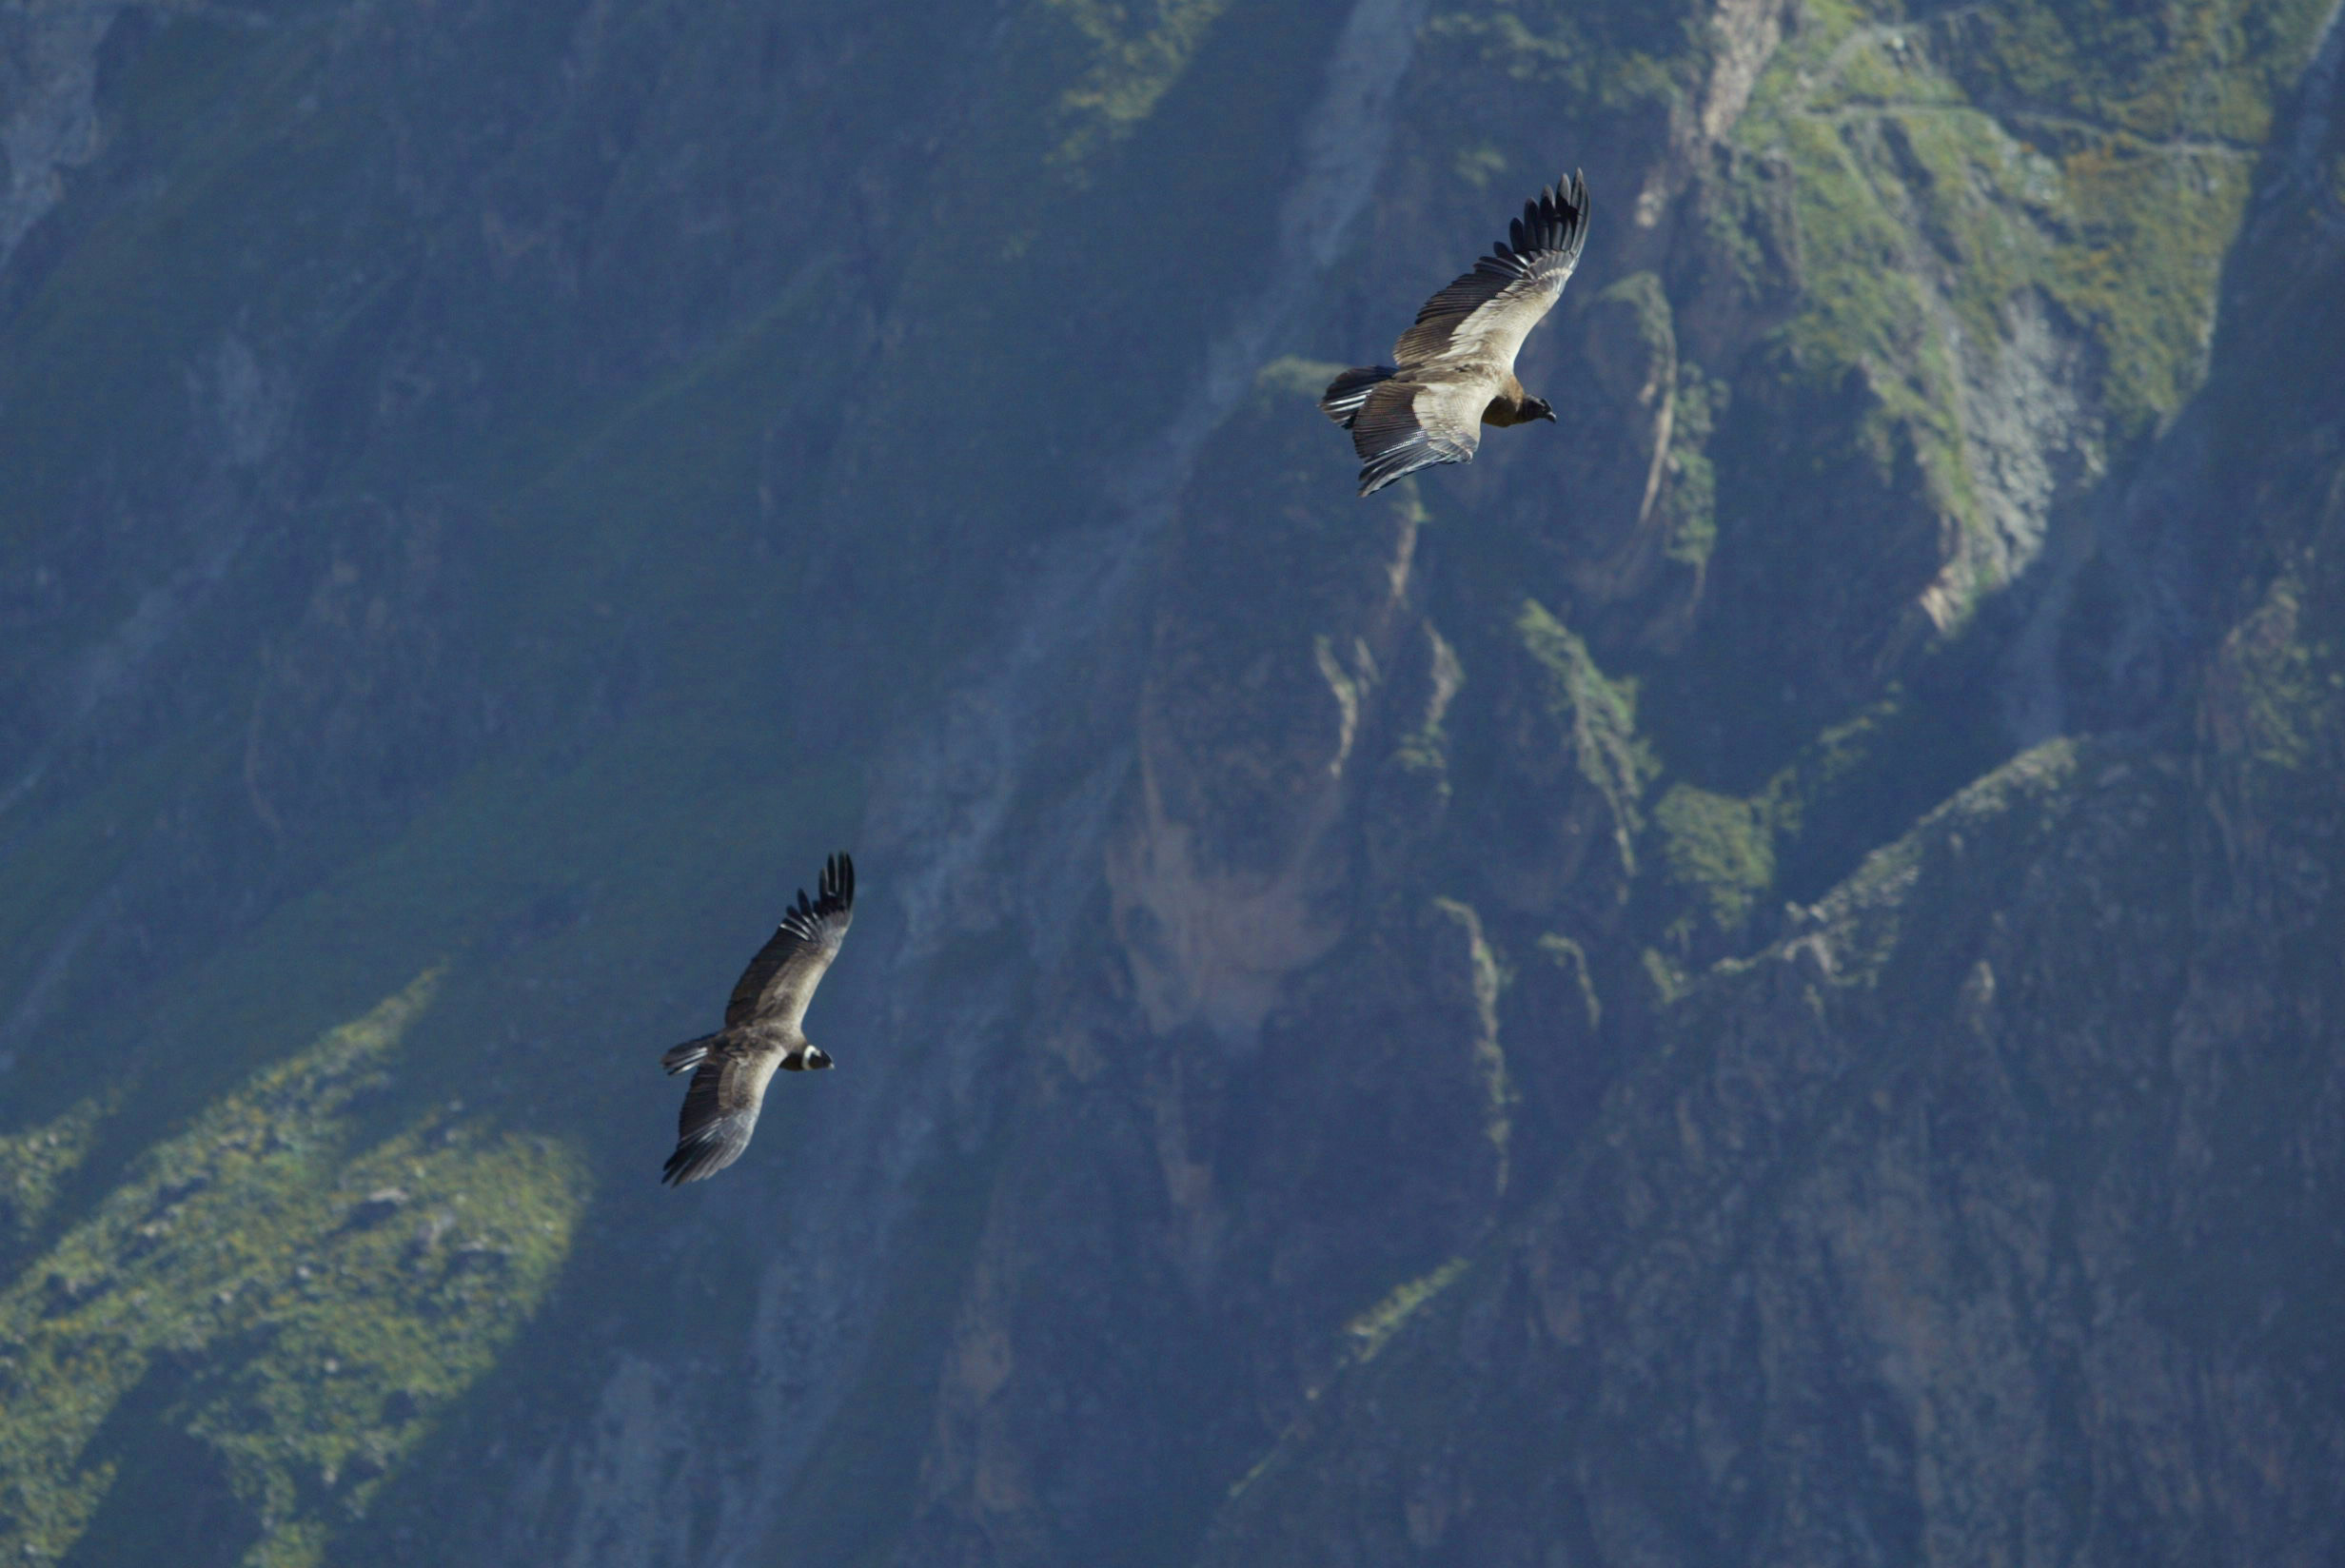 Giant Turtles Vs Vultures Condors Colca Canyon